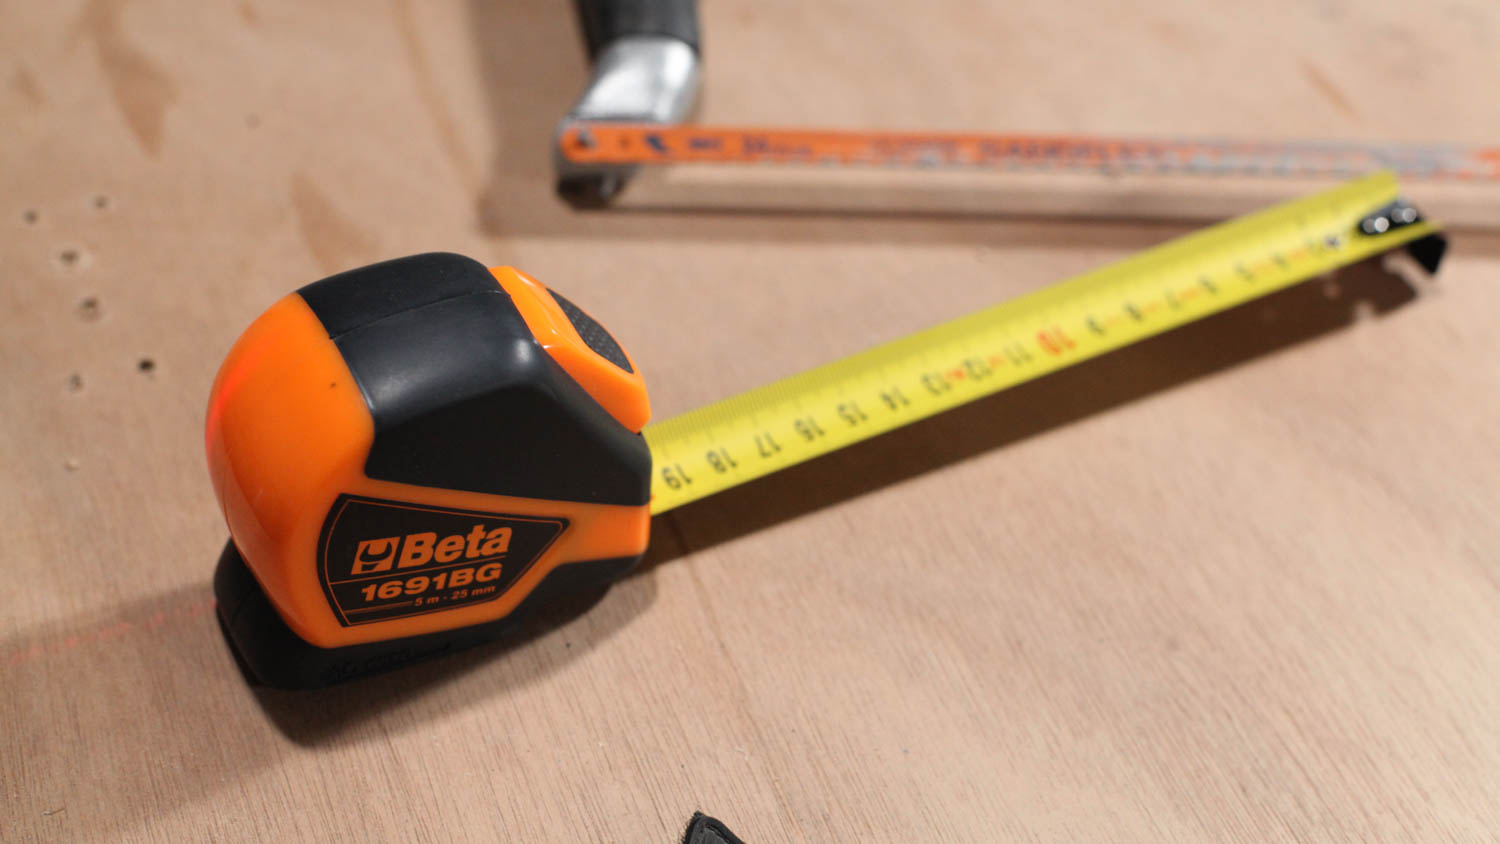 Metric tape measure - Measuring in centimeters and millimeters makes everything simpler.